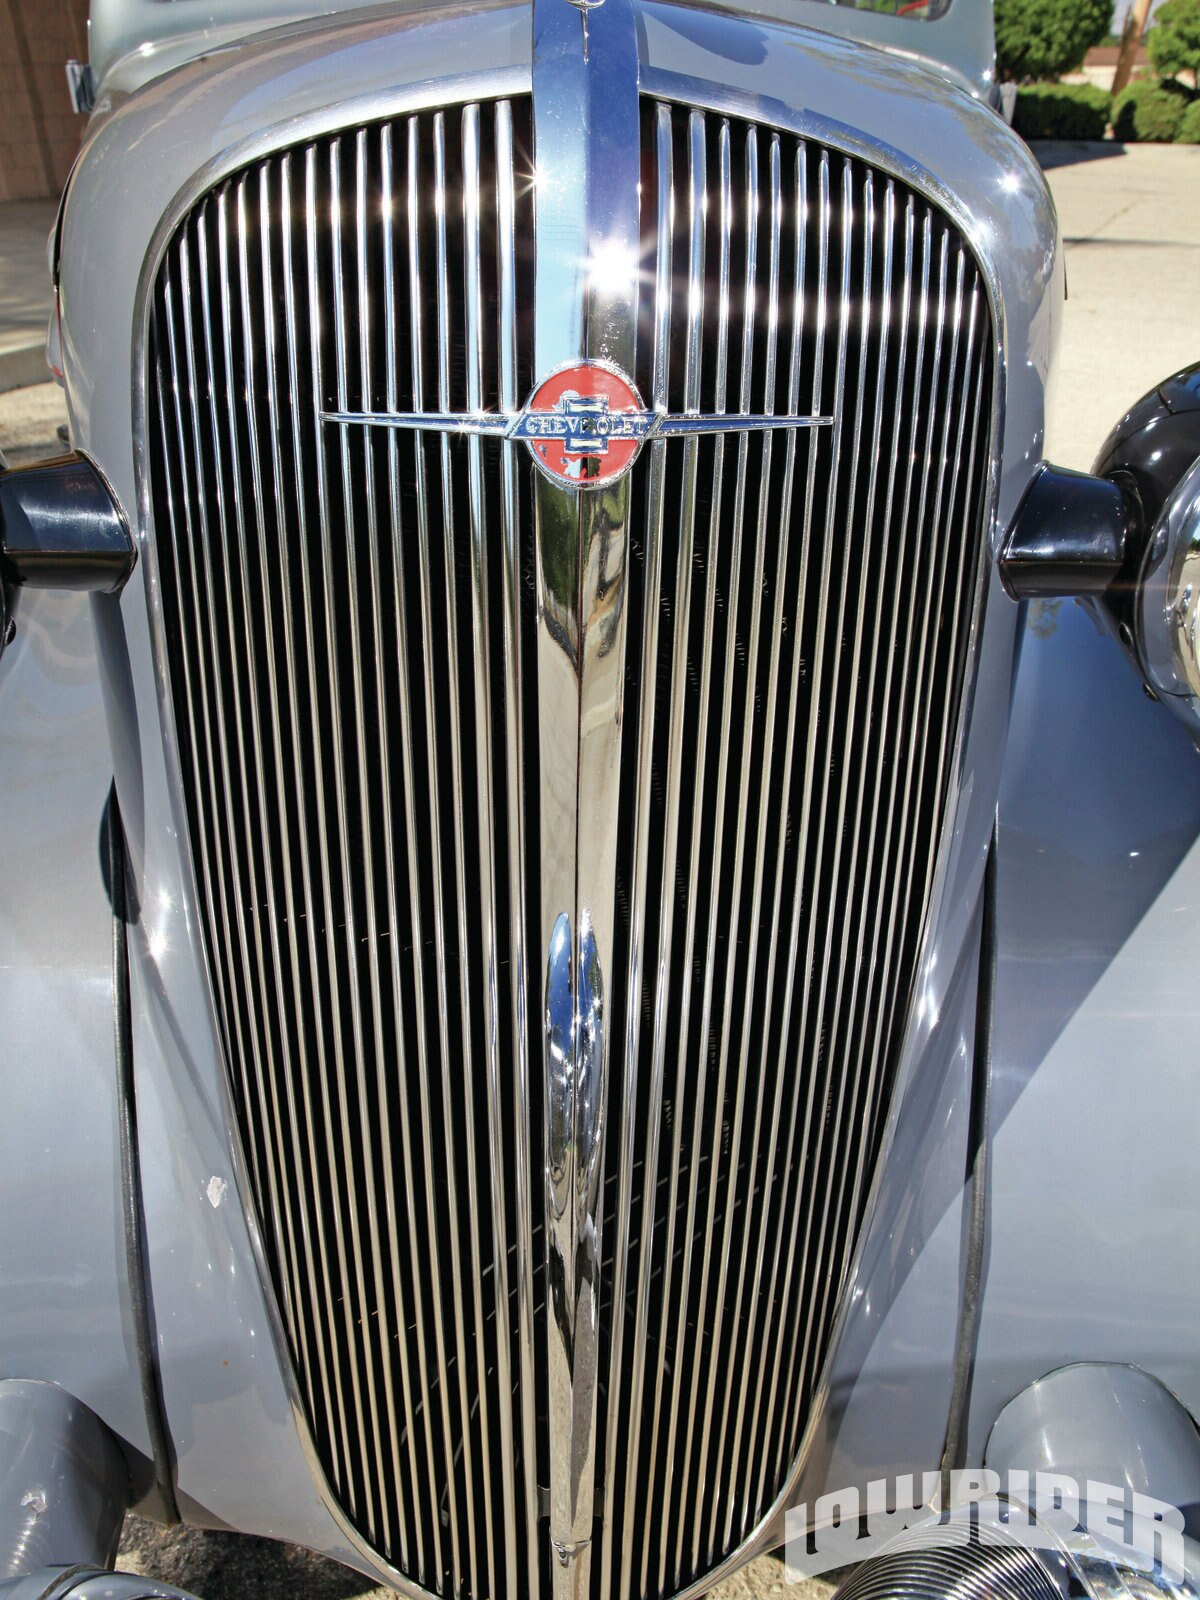 1936 Chevy Truck Grill | www.imgkid.com - The Image Kid ...